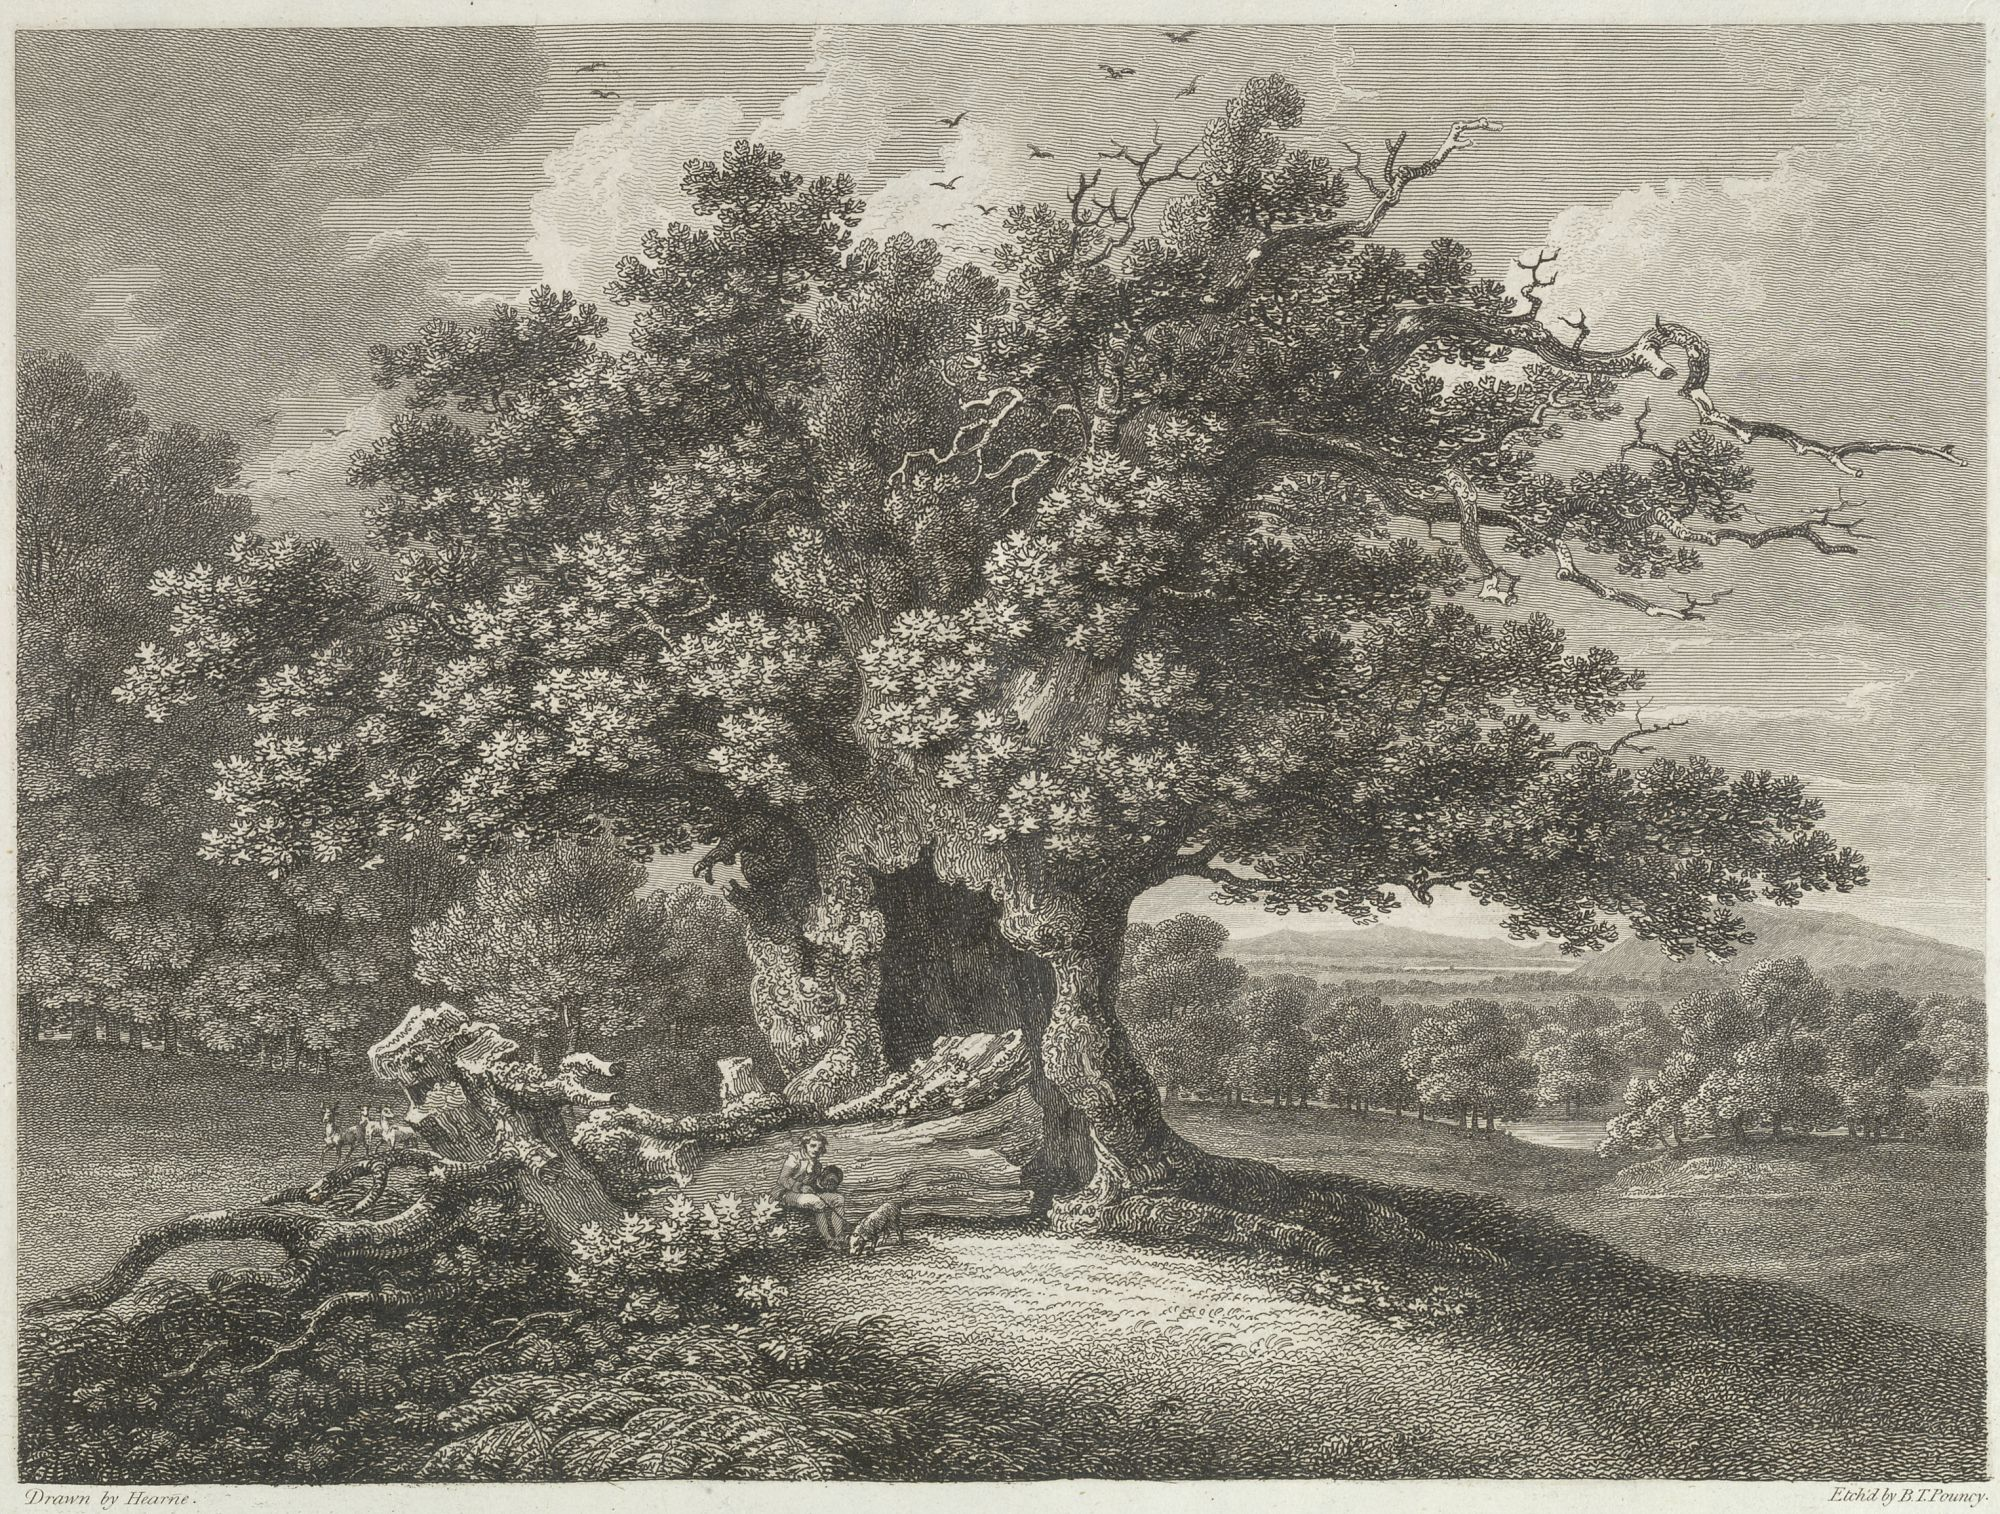 Benjamin Thomas Pouncy (–1799), after Thomas Hearne (1744–1817), Oak in Moccas Park, 1798, etching, Maps K.Top.15.101.a.